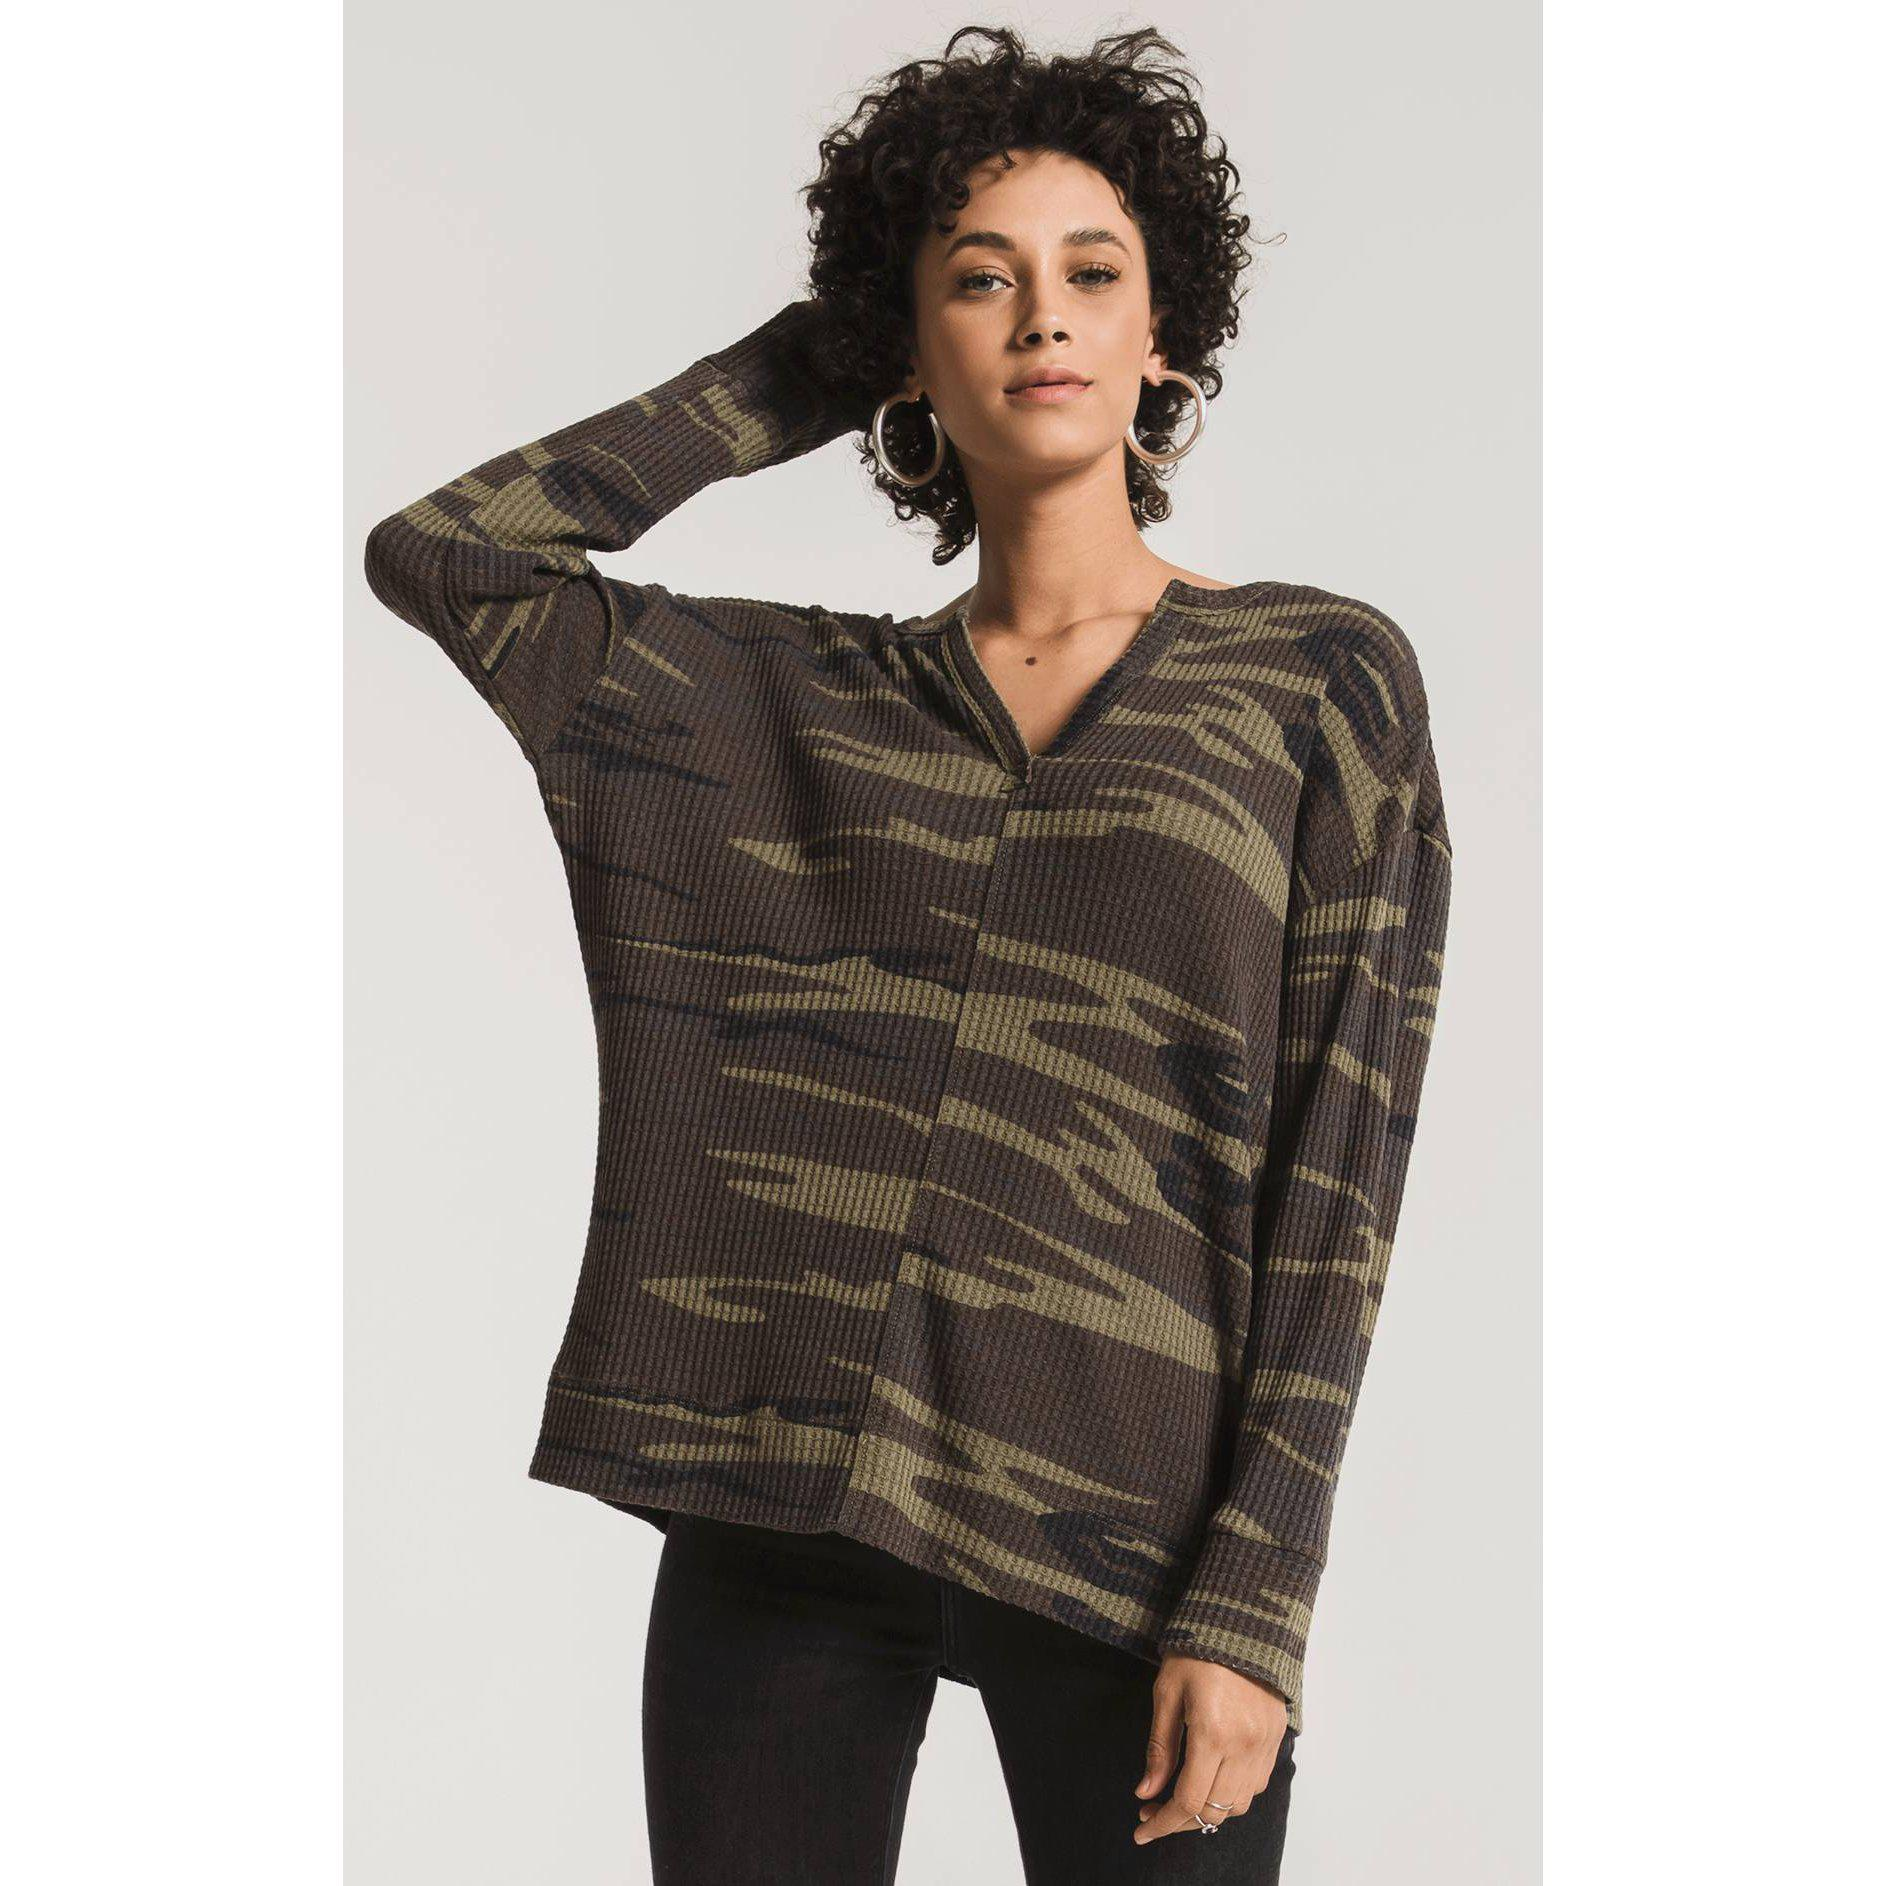 The Camo Split Thermal Top